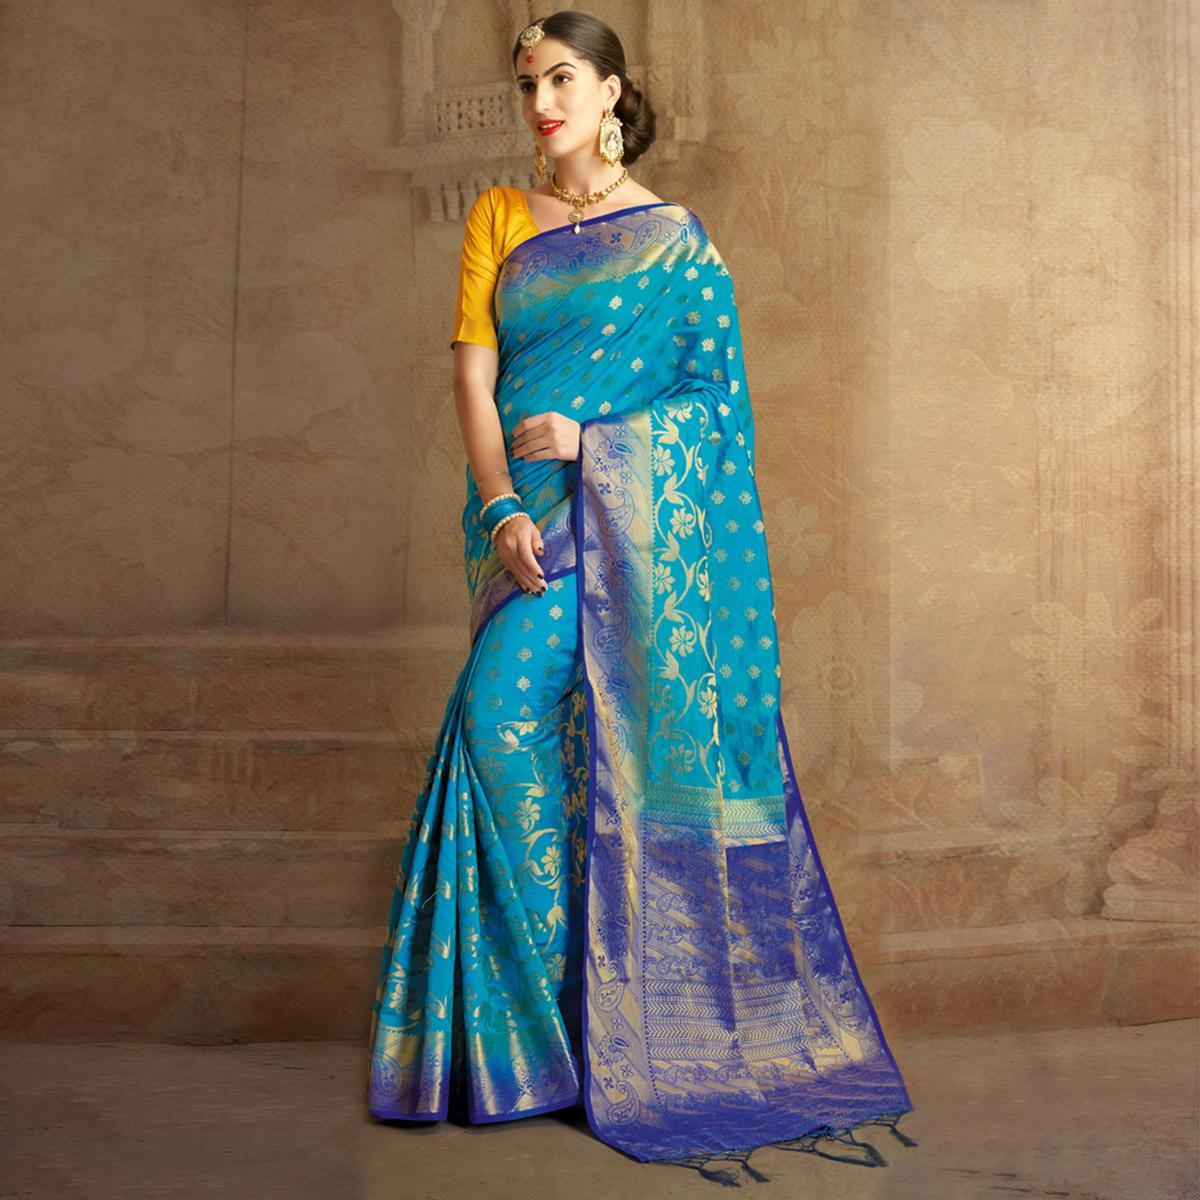 ff48f235490d9b Buy Sky Blue Colored Festive Wear Woven Work Nylon Soft Silk Saree for  womens online India